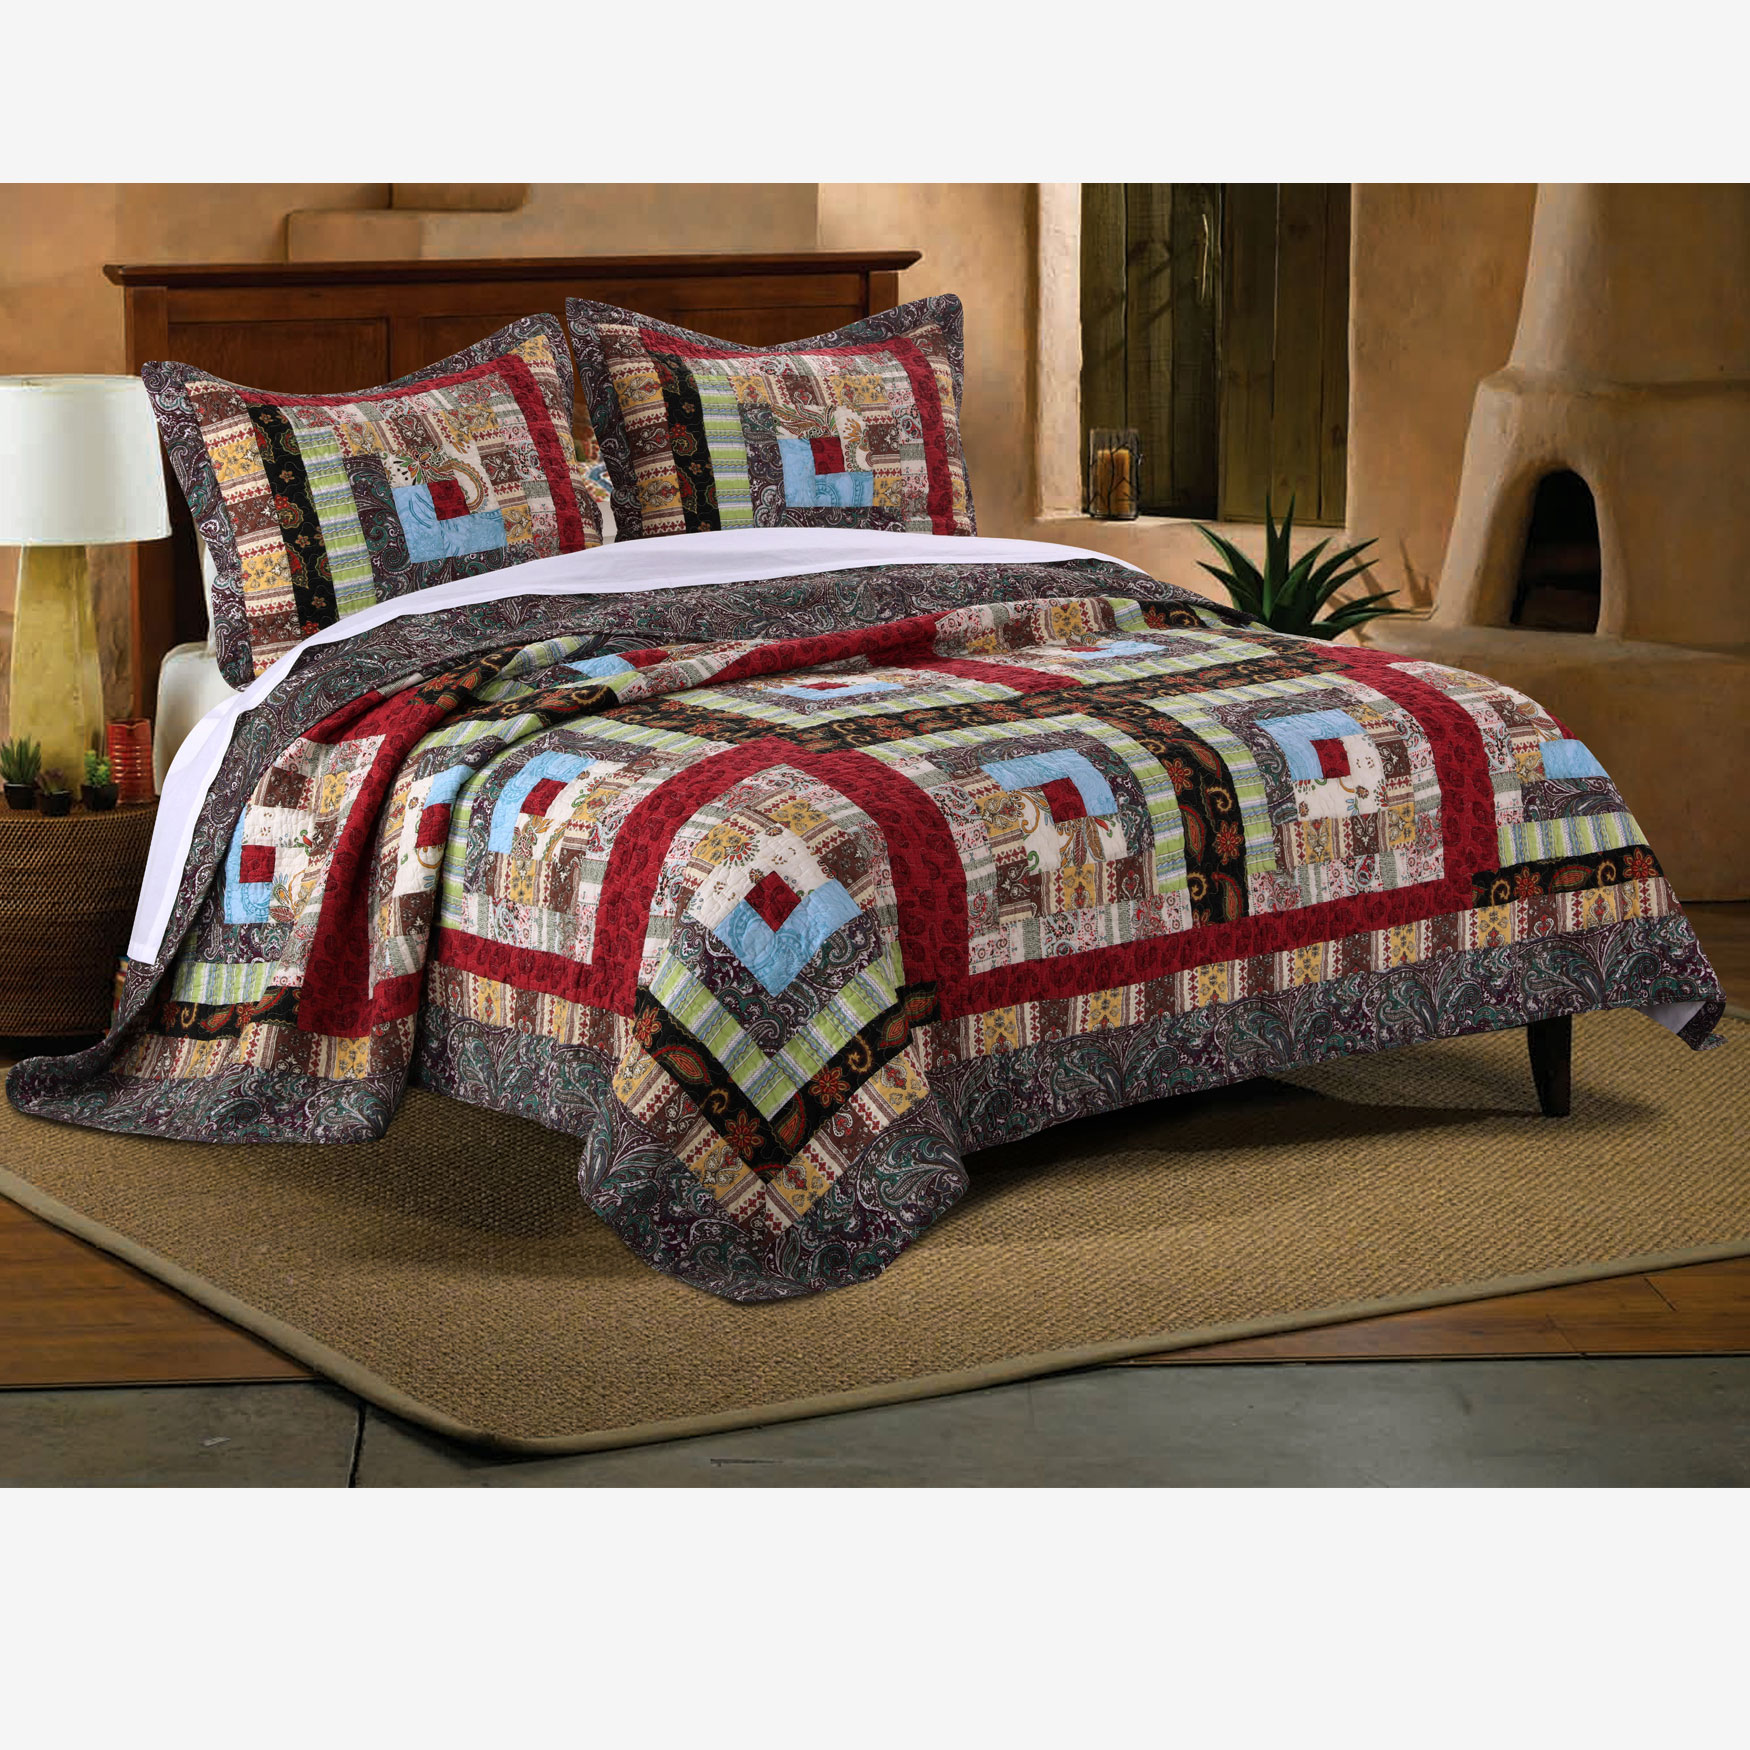 Colorado Lodge Quilt Set Greenland Home Fashions,